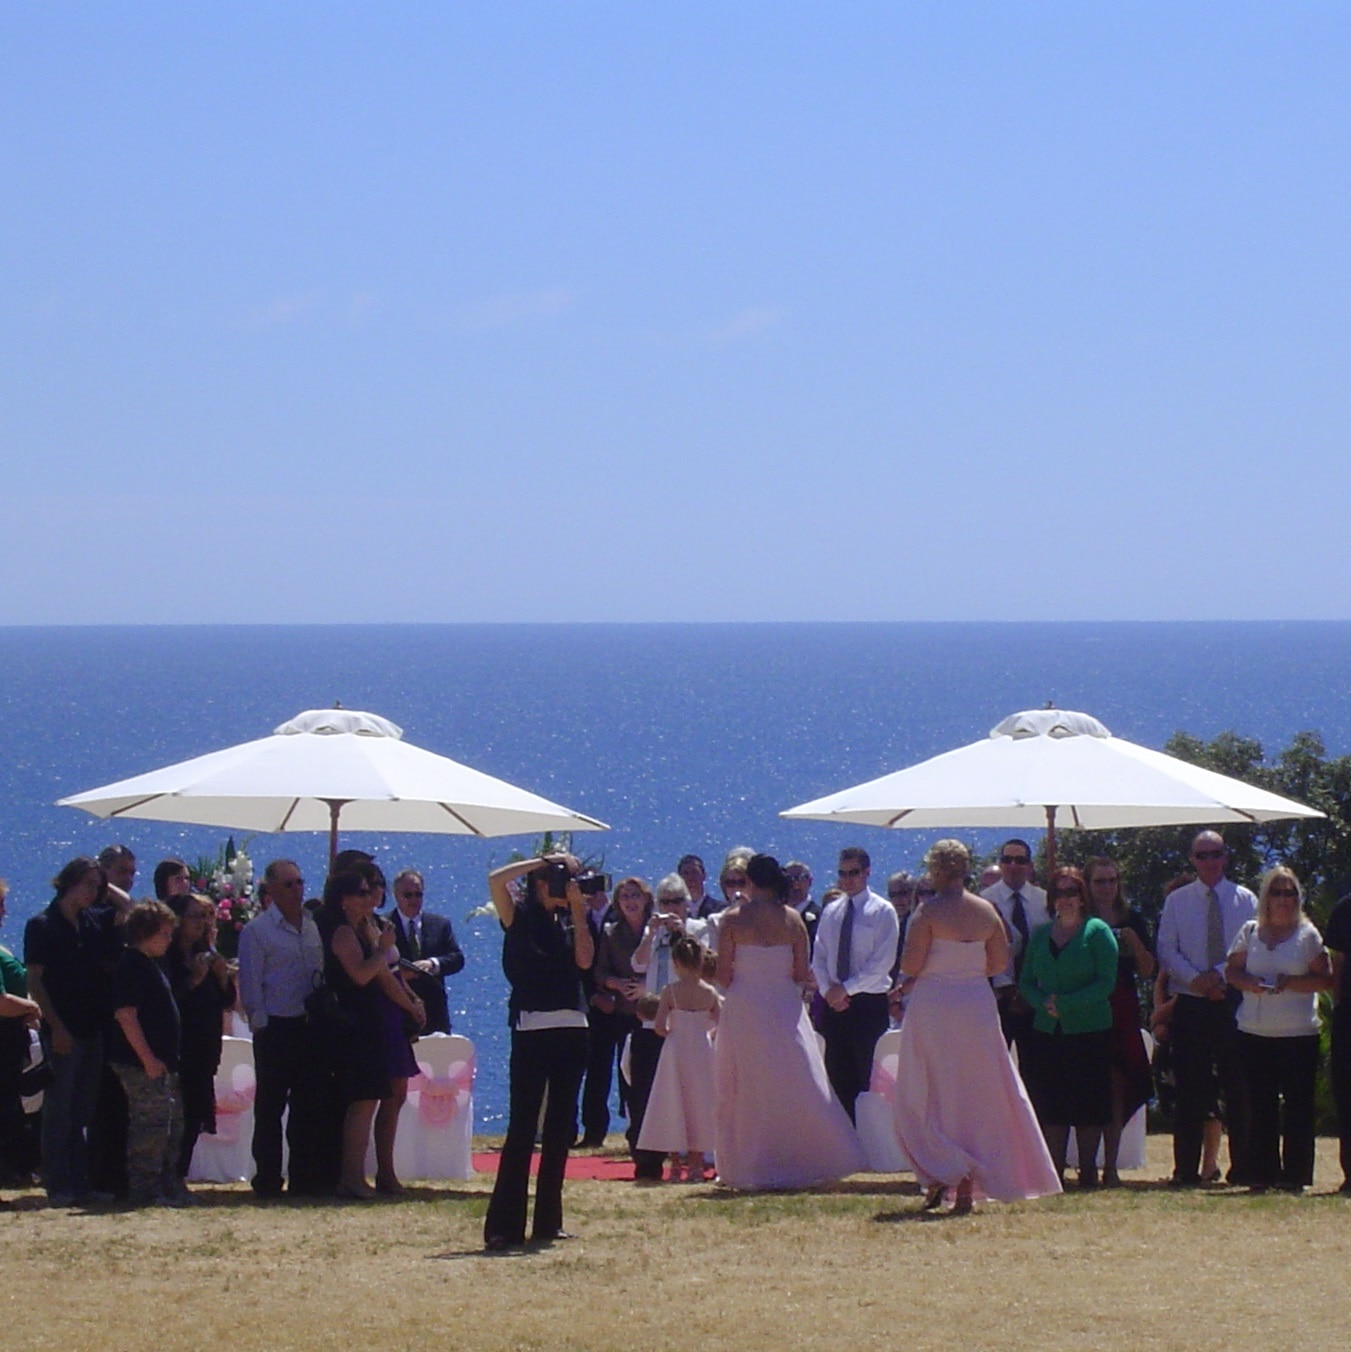 Wedding Hire Adelaide Beach wedding market umbrellas